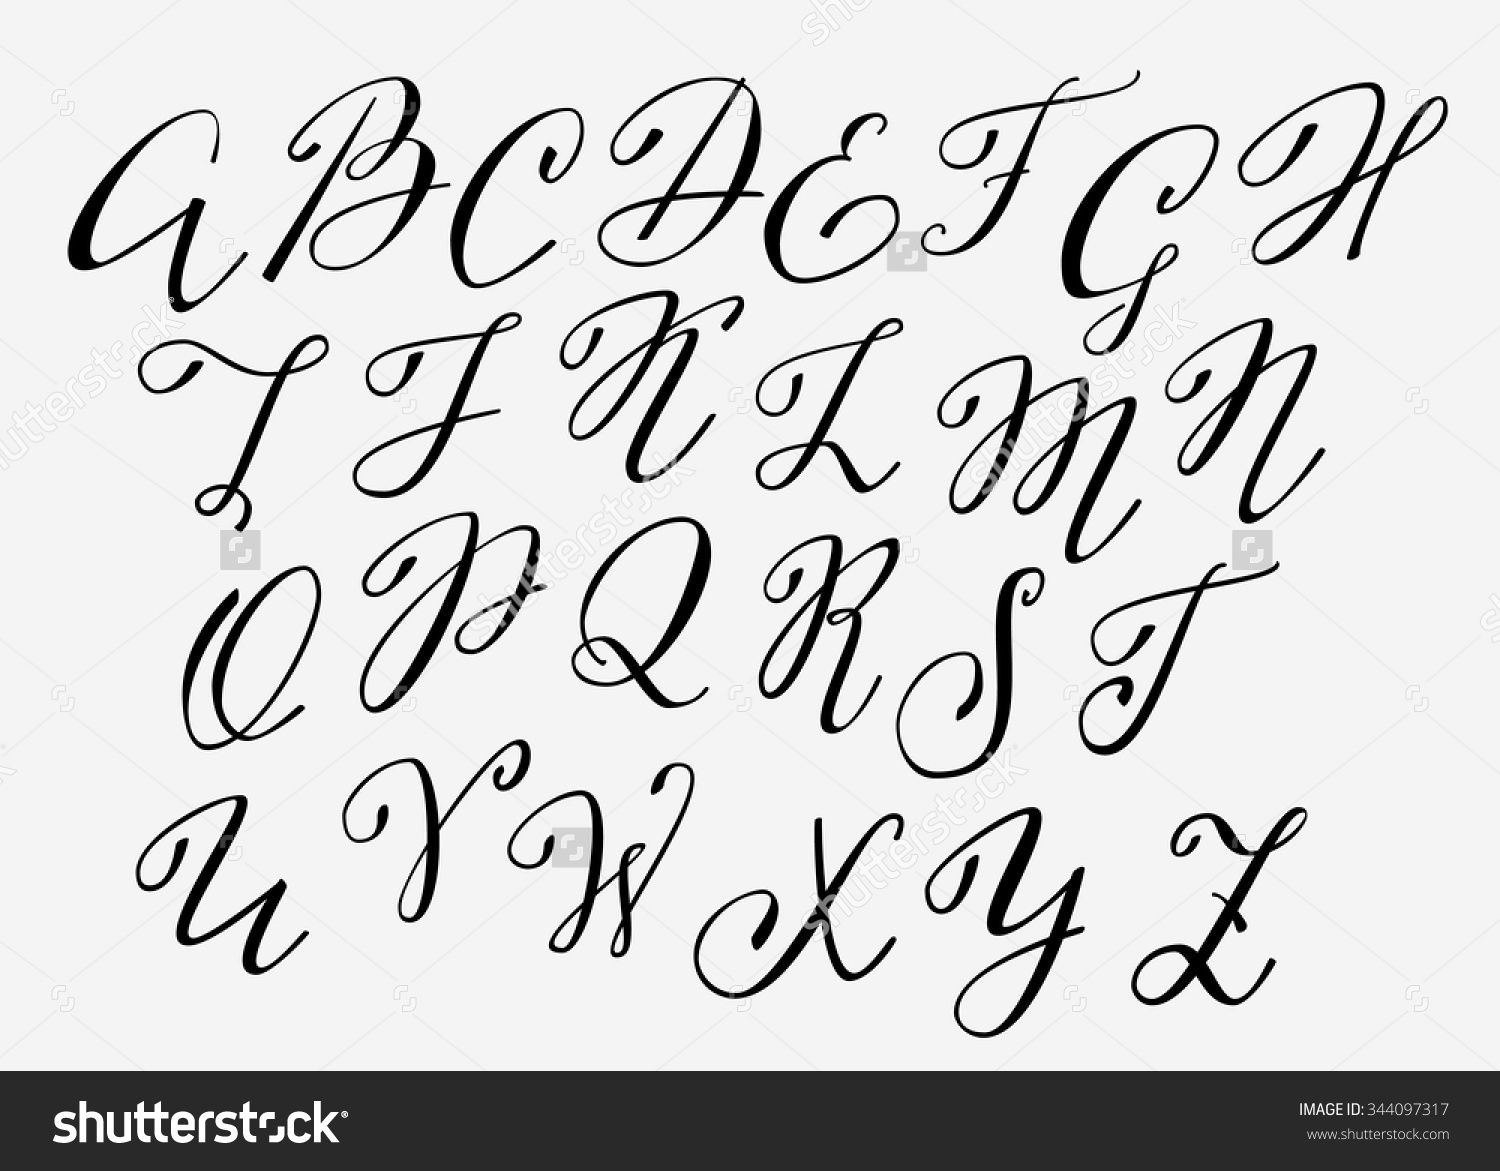 Stock Vector Handwritten Calligraphy Flourish Font Capital Letters Modern Alphabet Isolated 344097317 1500x1171